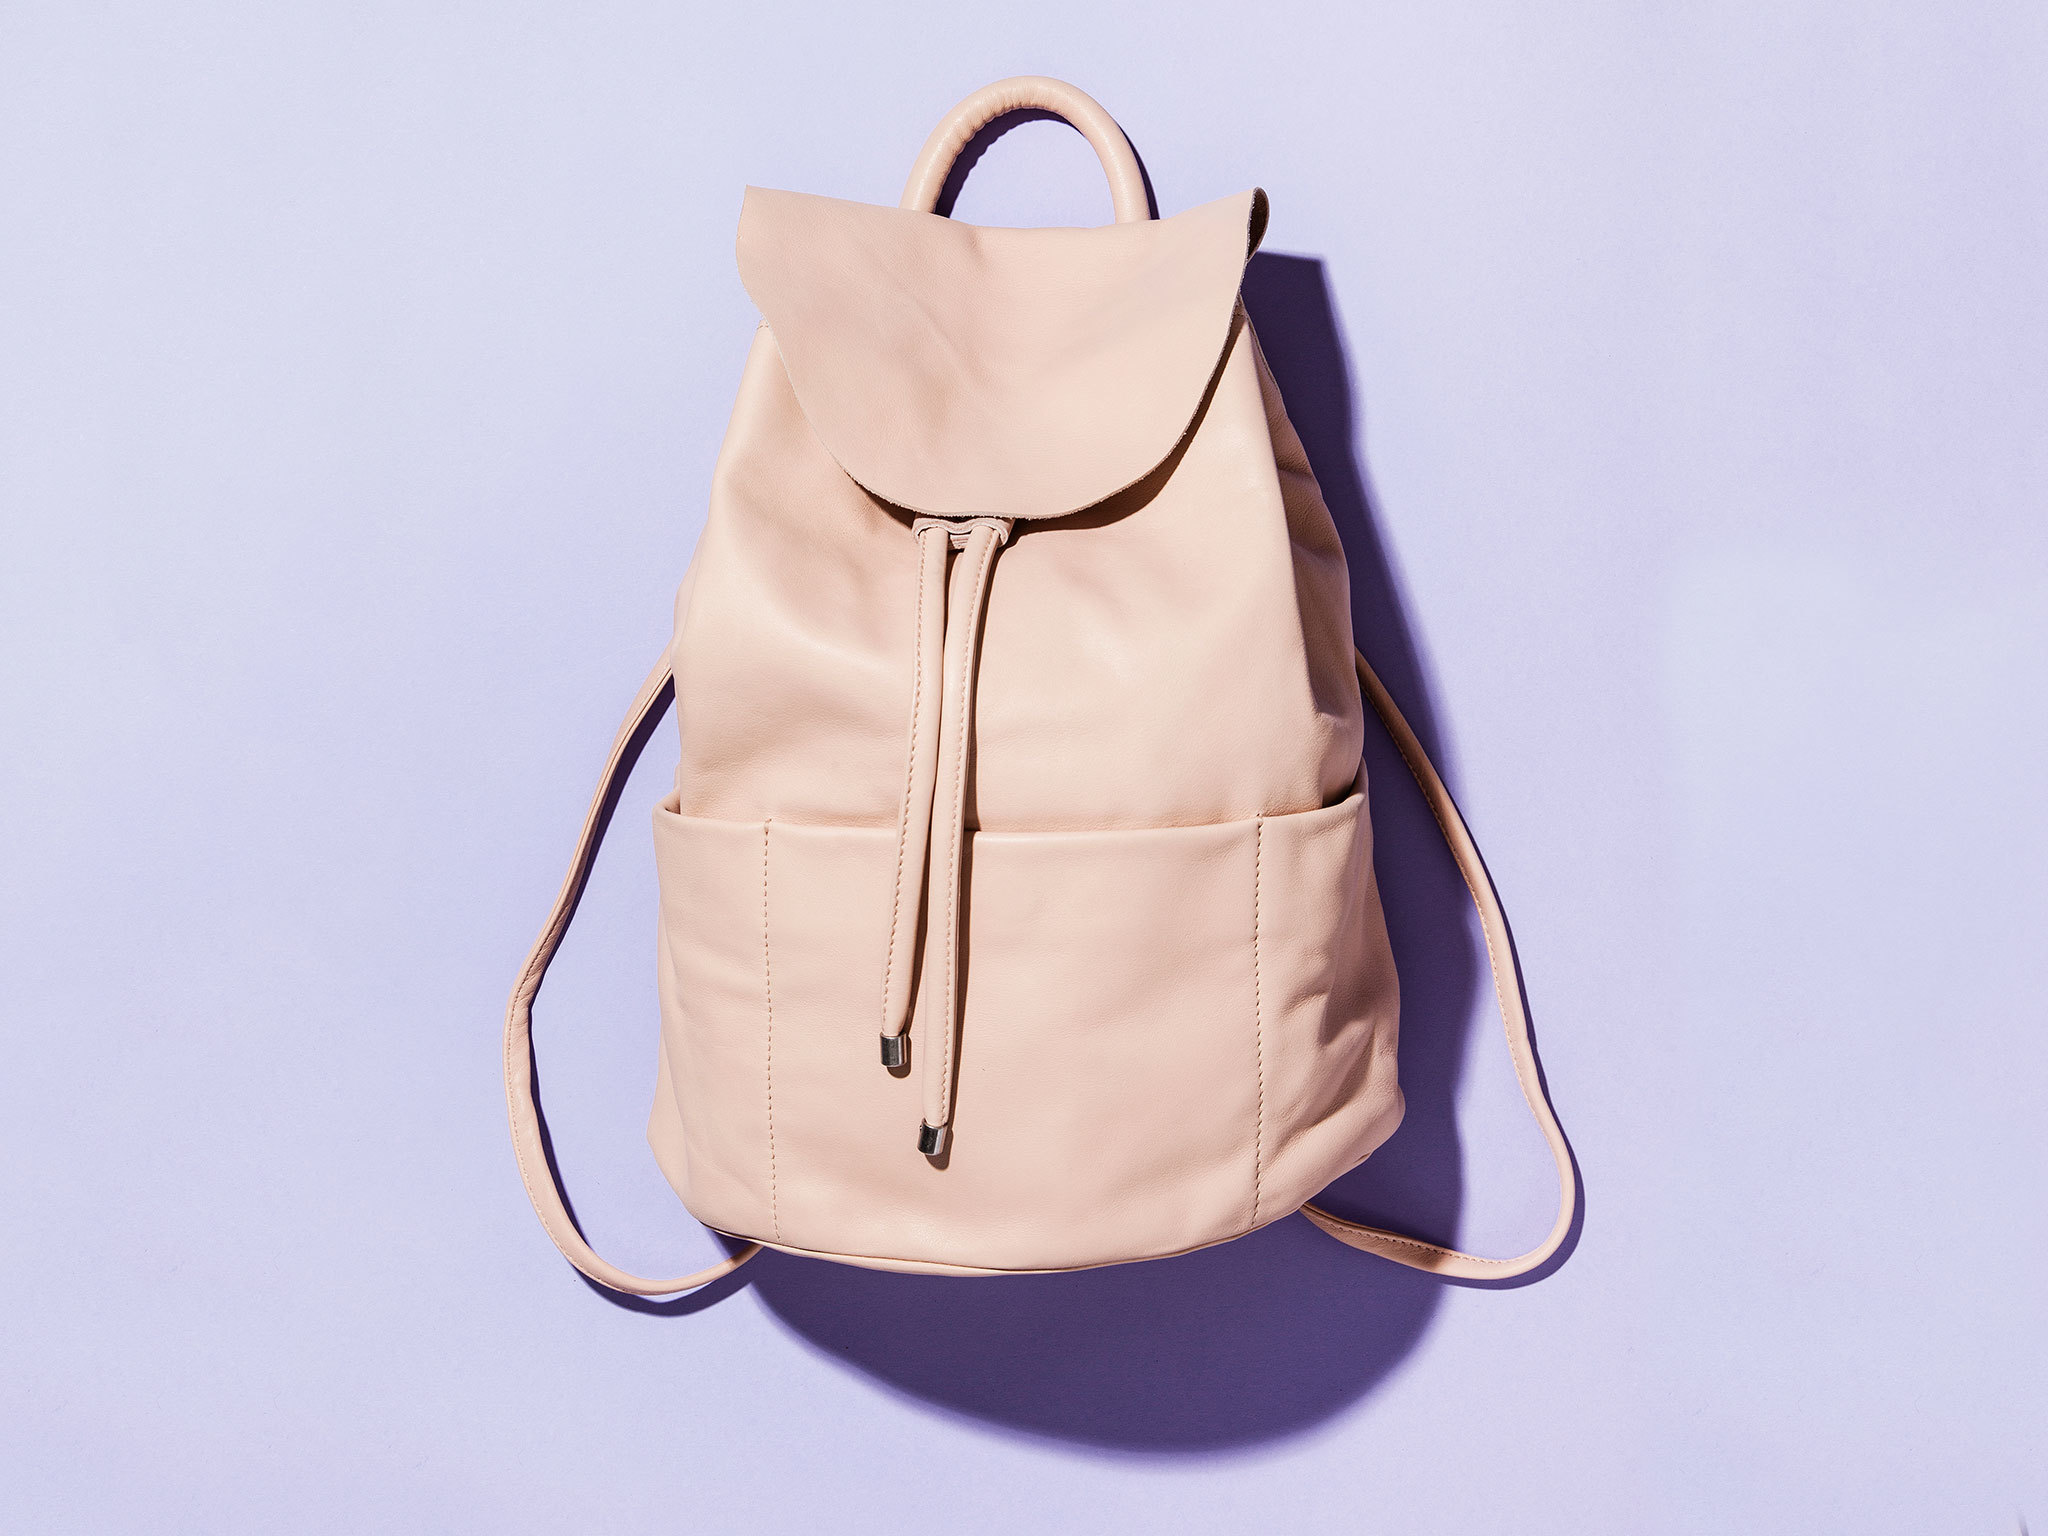 Unstructured leather backpack by COS